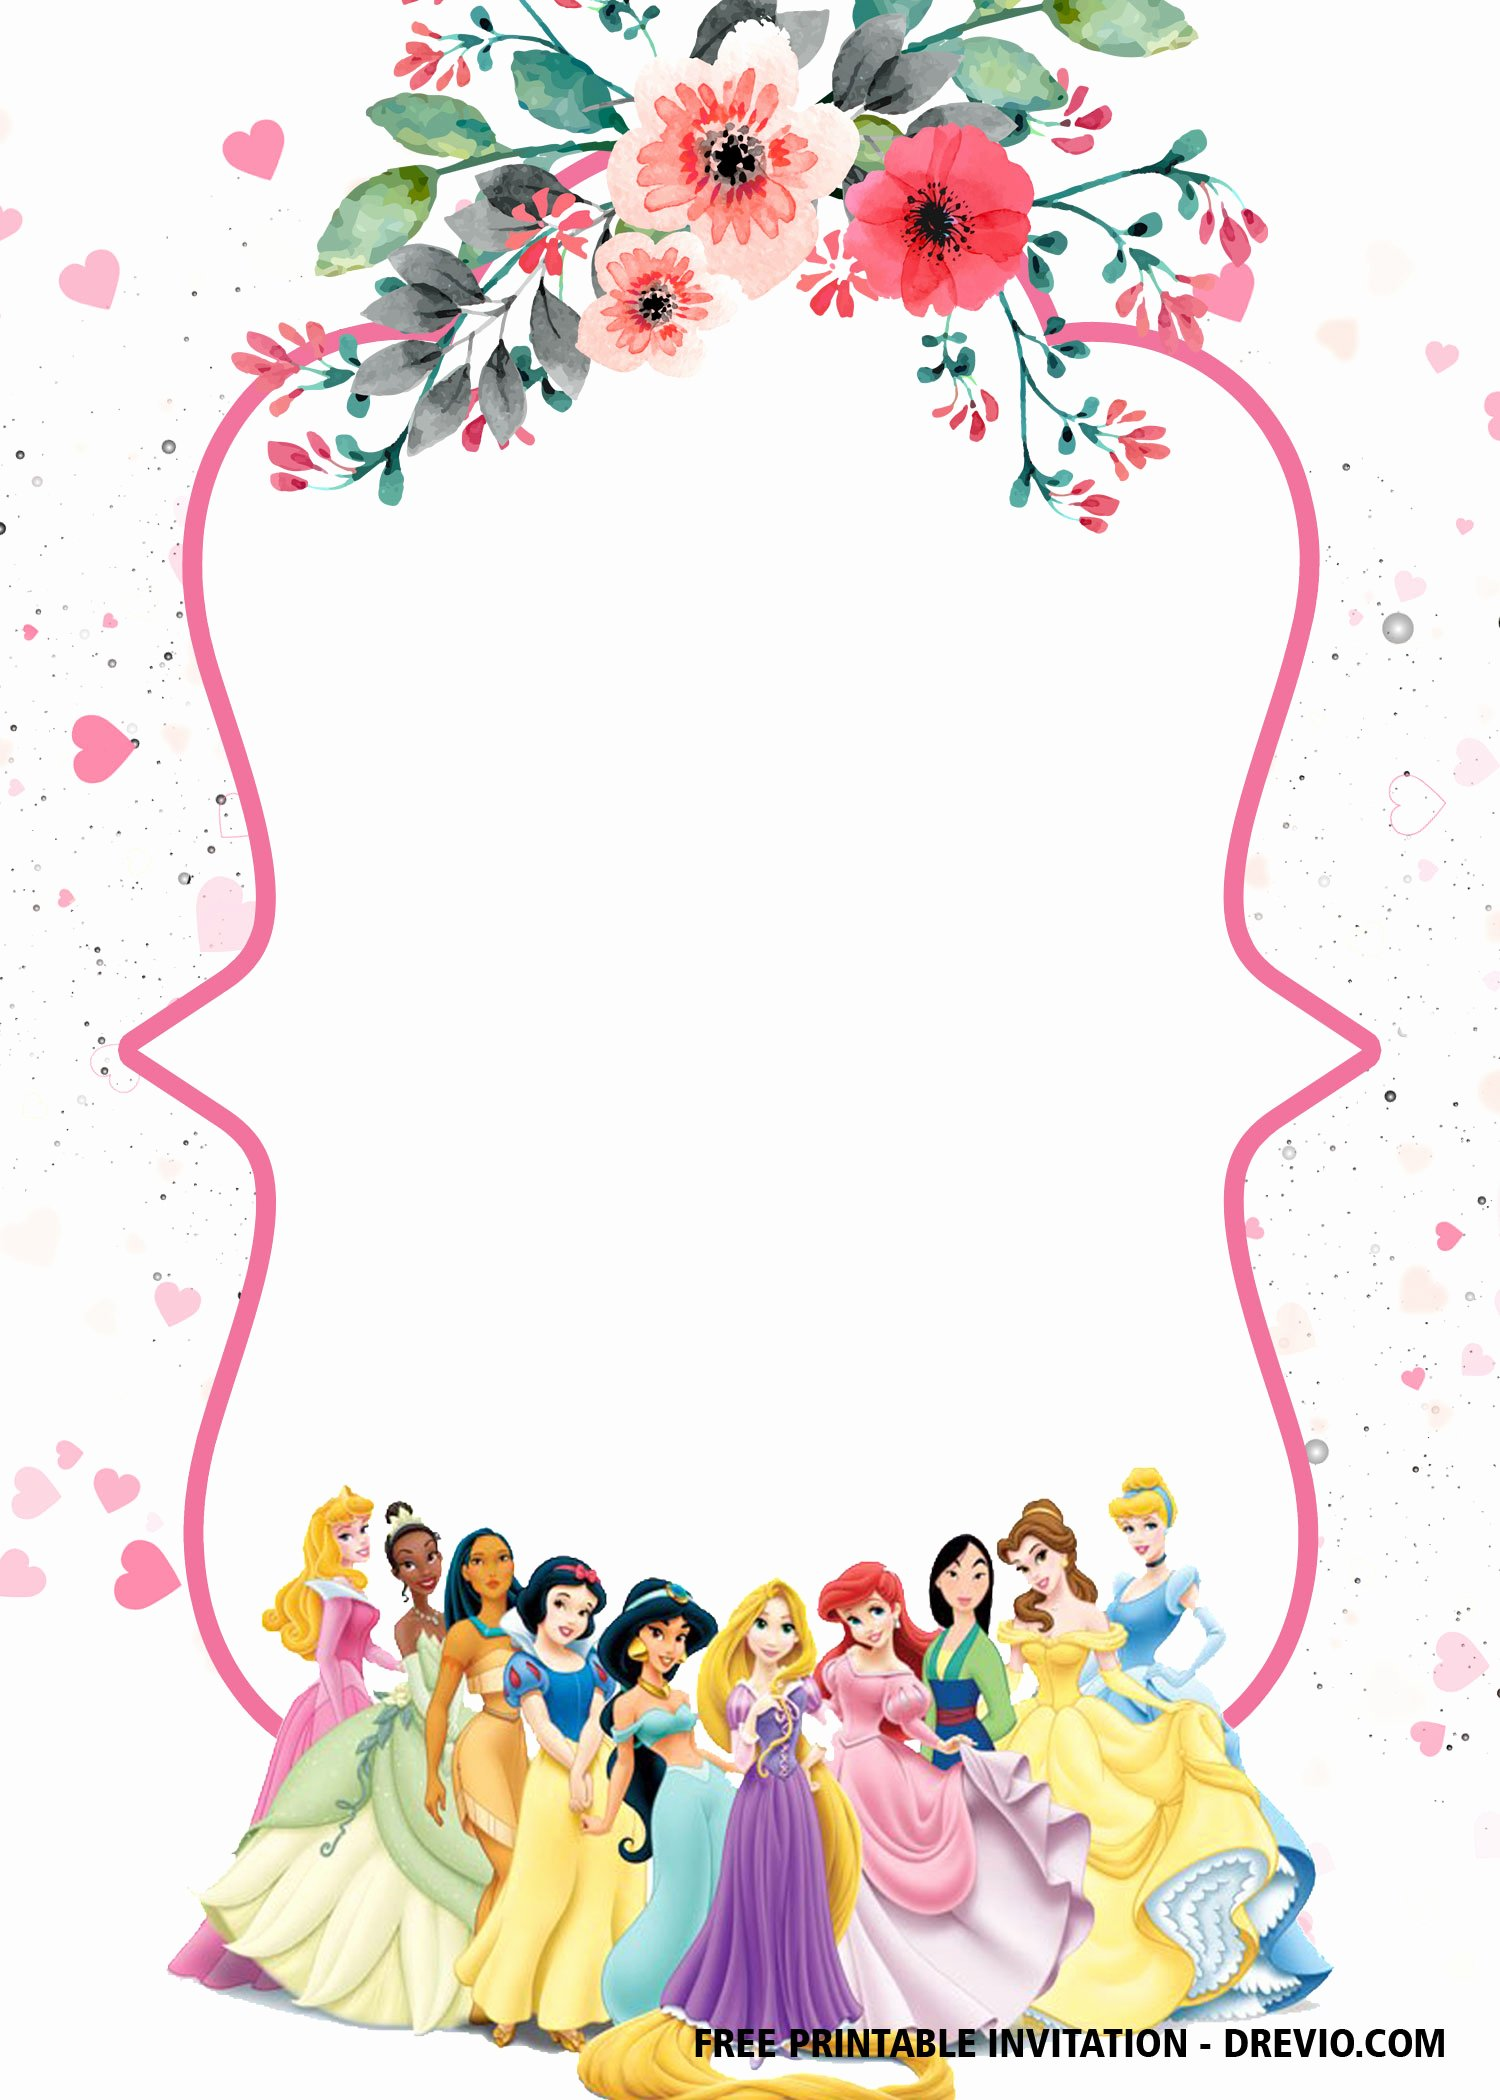 Disney Princess Invitation Templates Free Luxury Free Printable Disney Princesses Invitation Templates